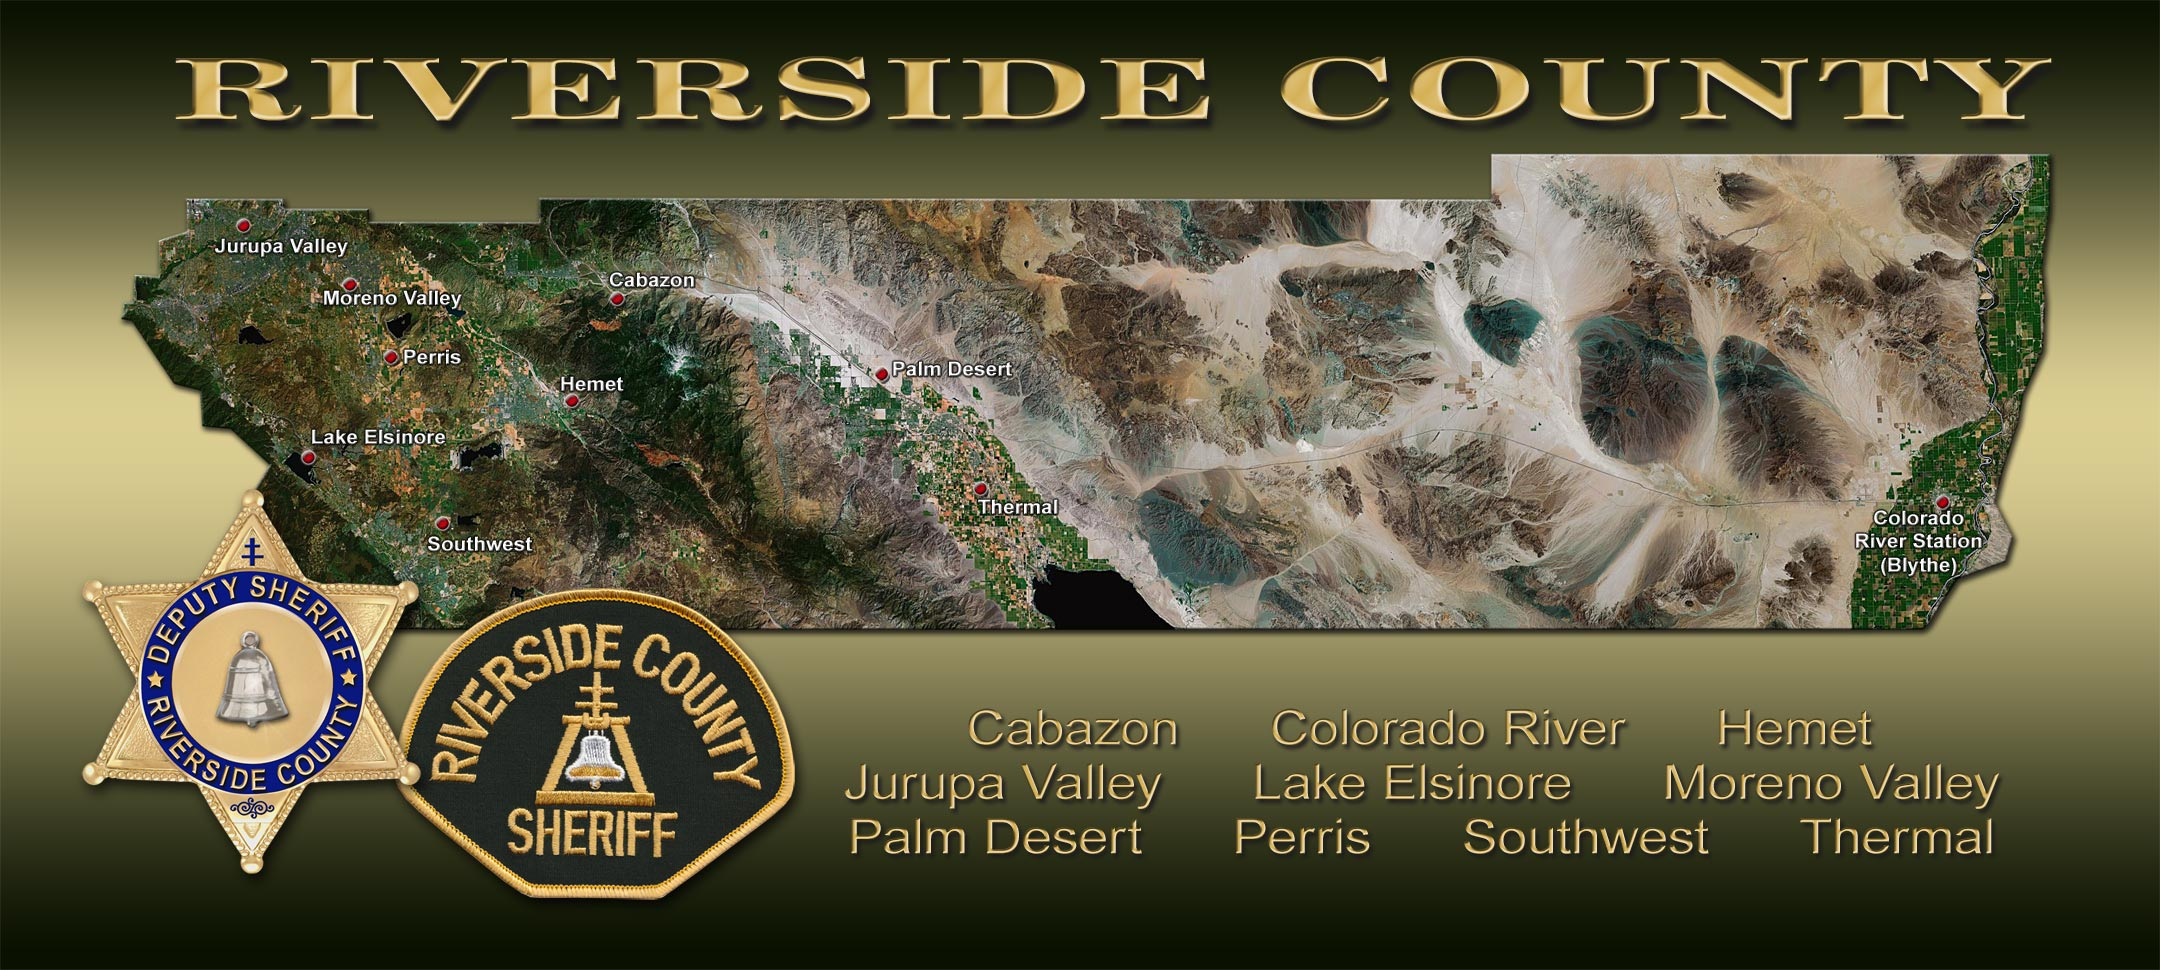 riverside sheriff Here are the top 25 captain profiles at riverside county sheriff's department on linkedin get all the articles, experts, jobs, and insights you need.